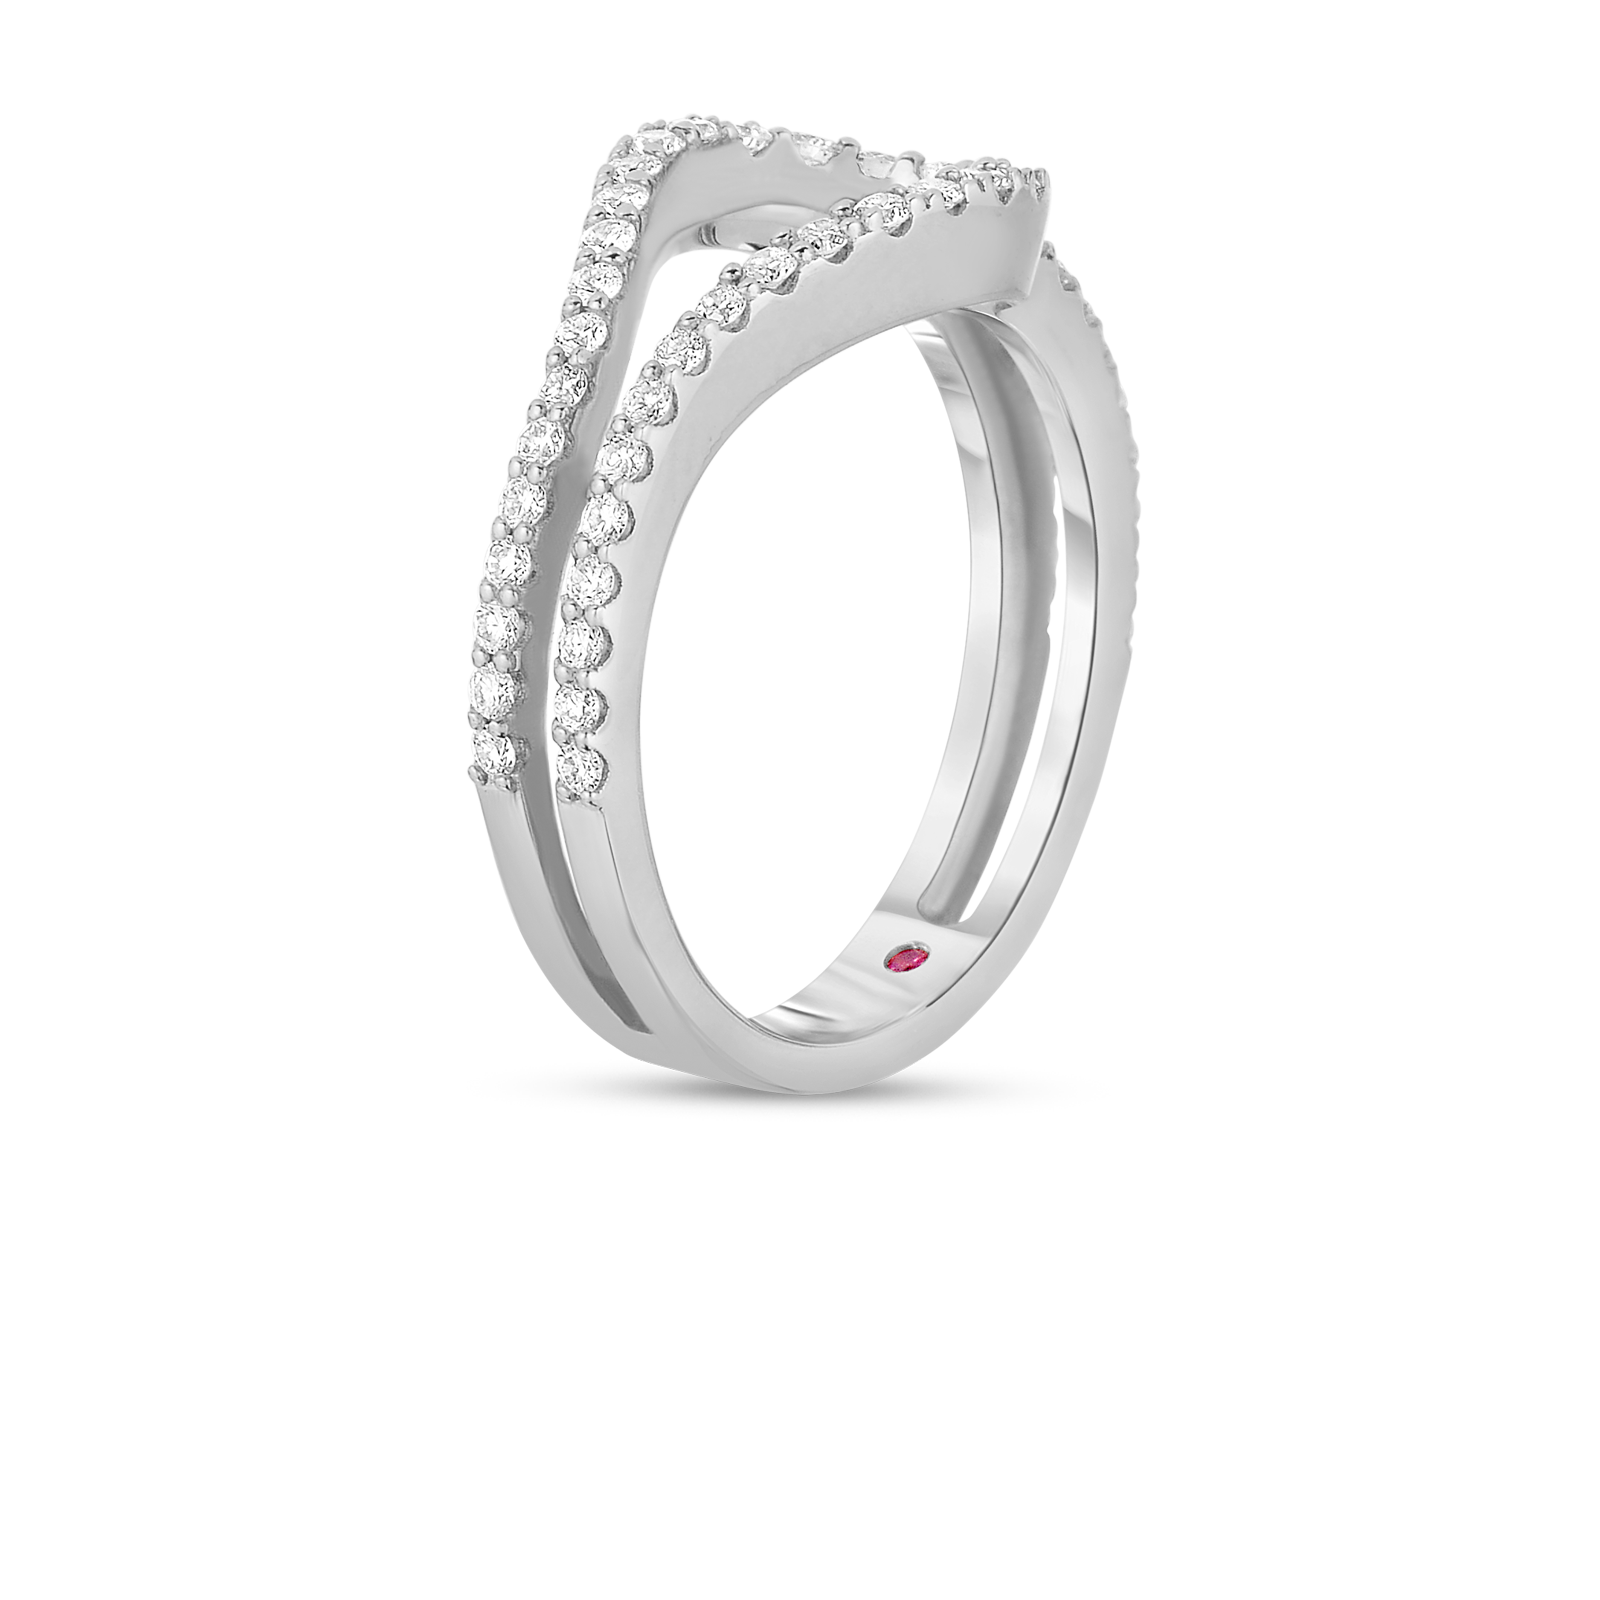 Roberto-Coin-Classic-Diamond-18K-White-Gold-Art-Deco-Ring-with-Diamonds-8882030AX65X_SIDE